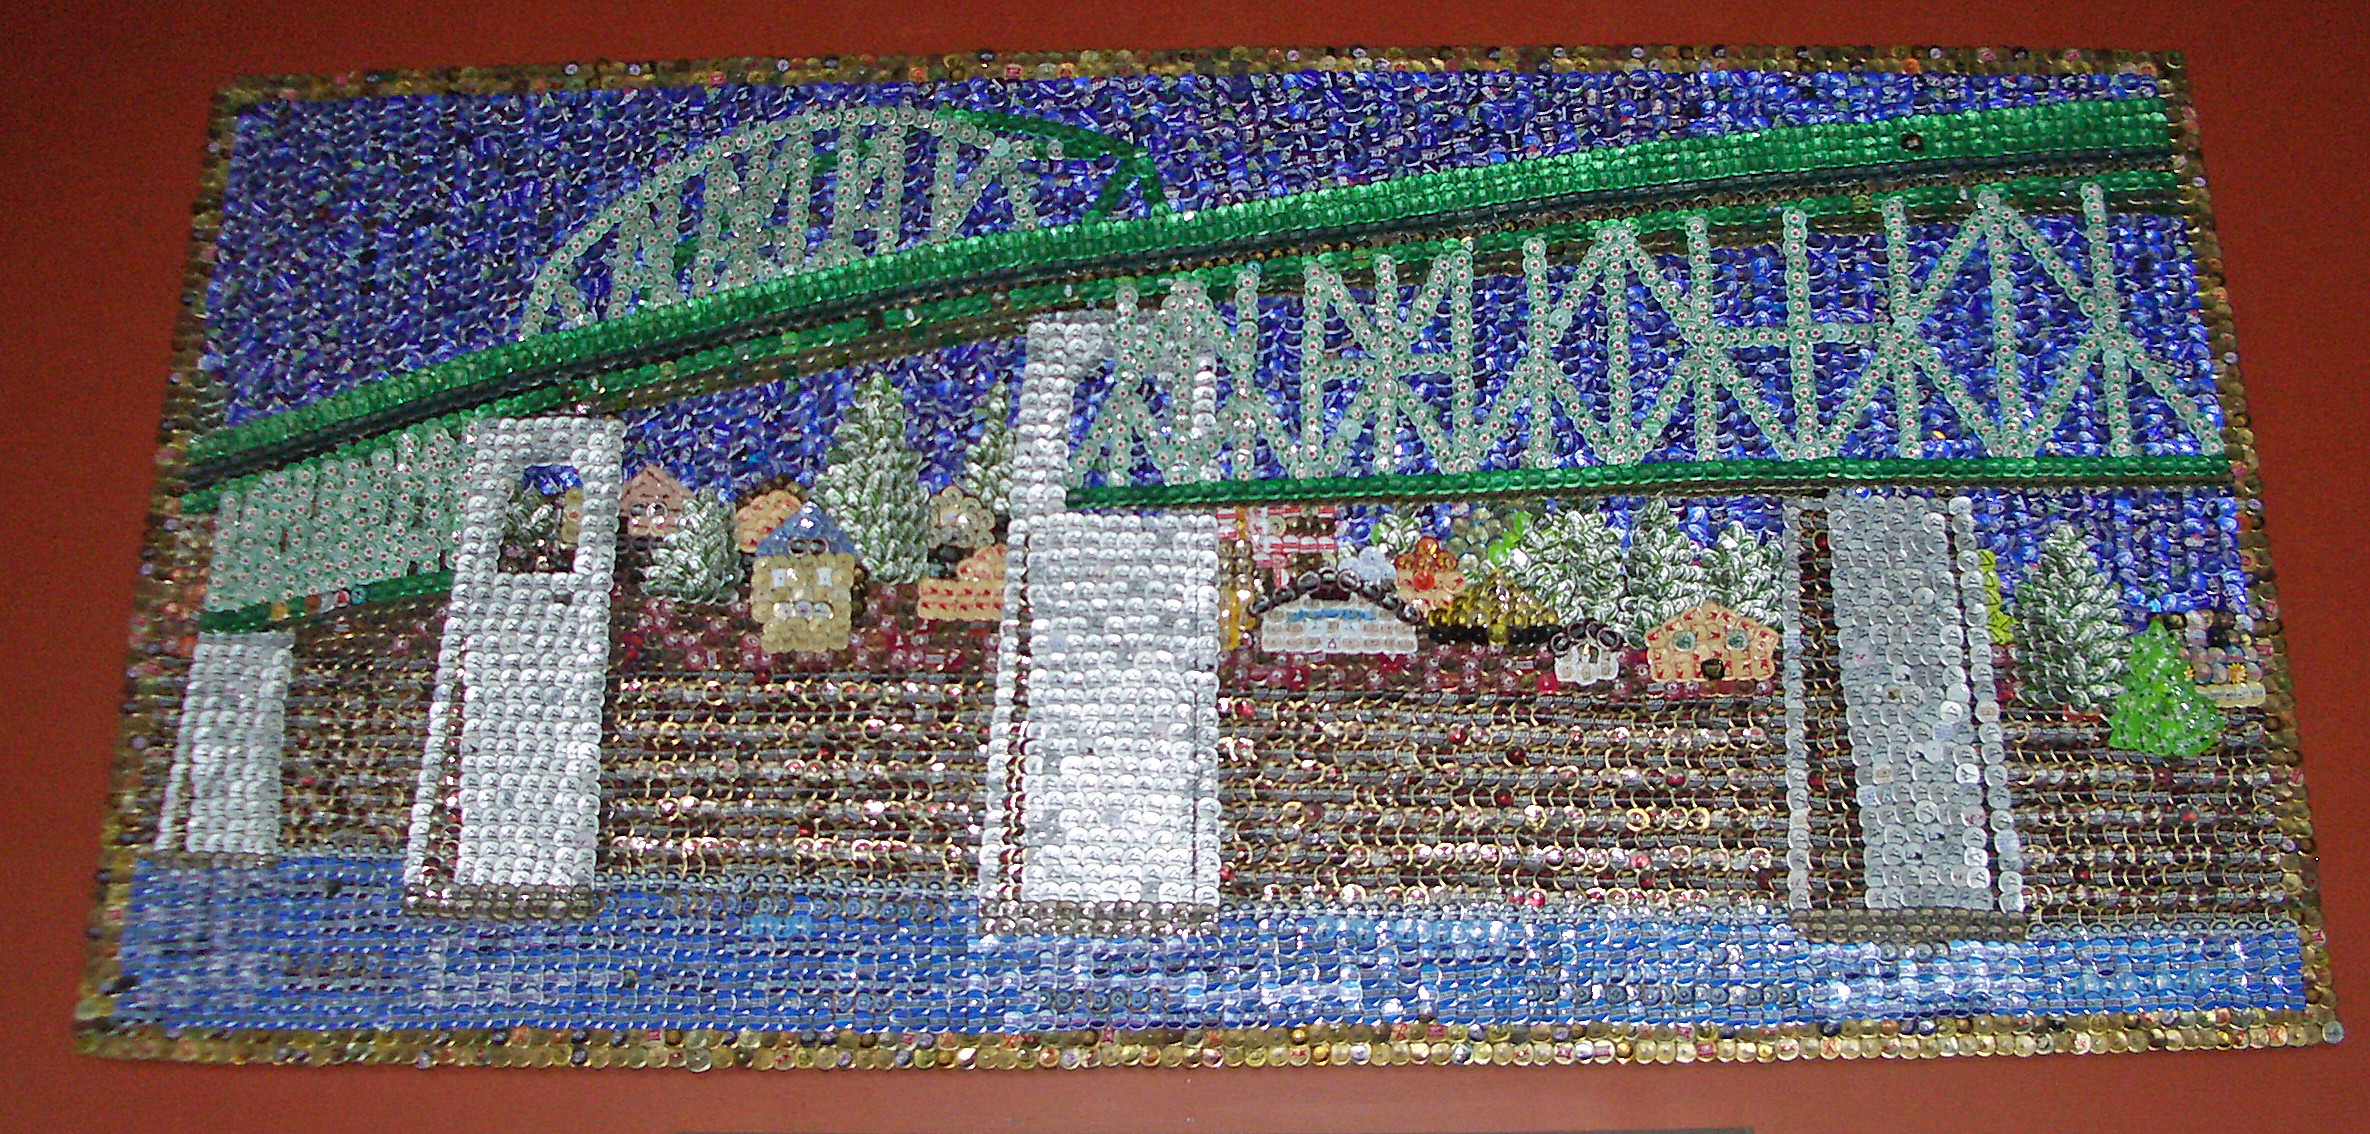 Recycle art bremerton wa ruby re usable for Bottle cap mural tutorial